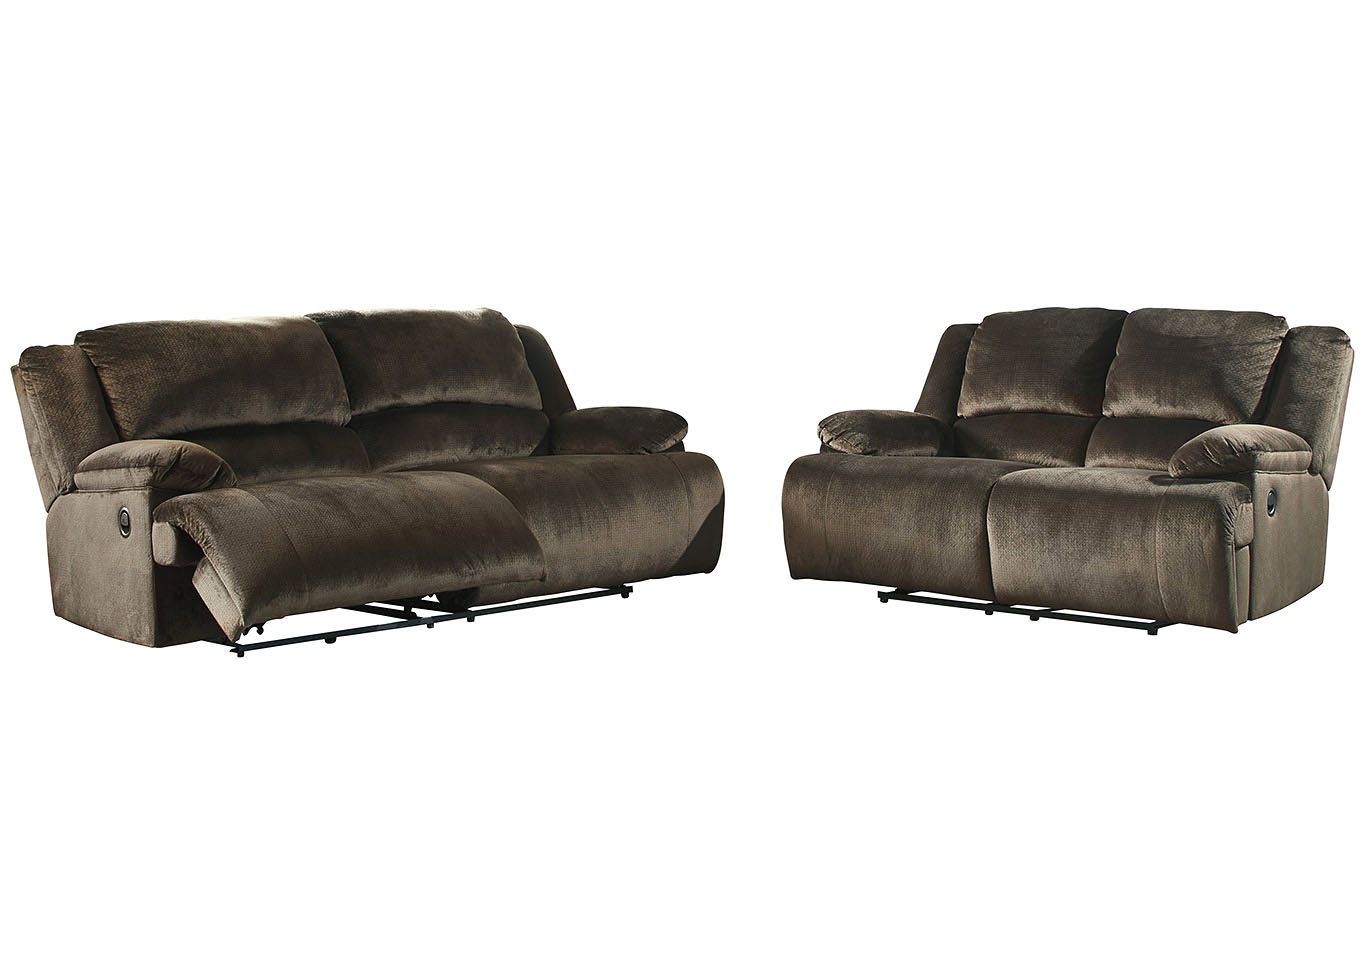 Clonmel Reclining Sofa and Loveseat,Signature Design By Ashley